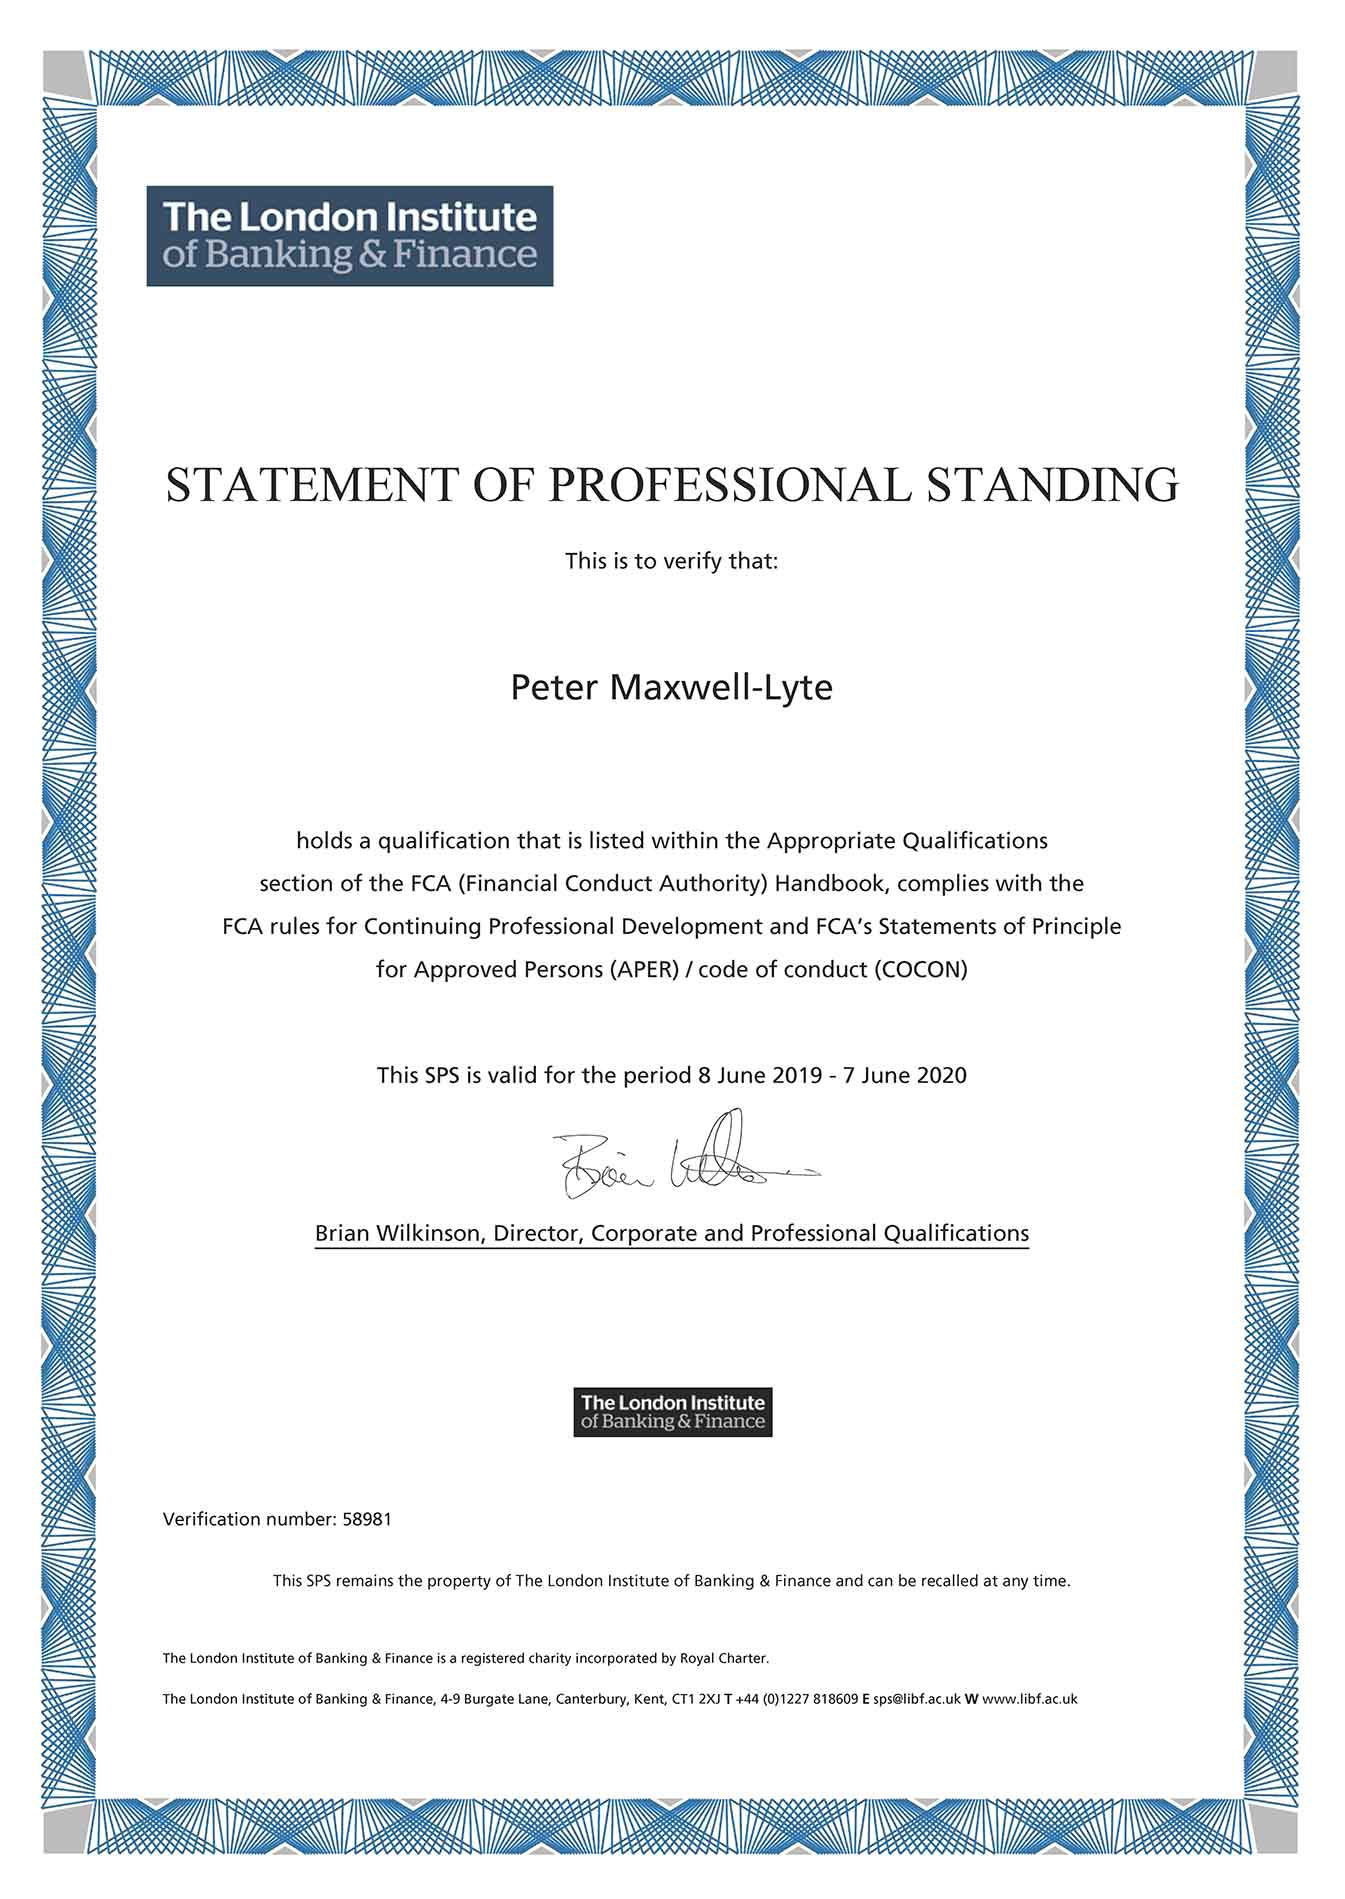 The London Institute of Banking and Finance Statement of Professional Standing for Peter Maxwell-Lyte